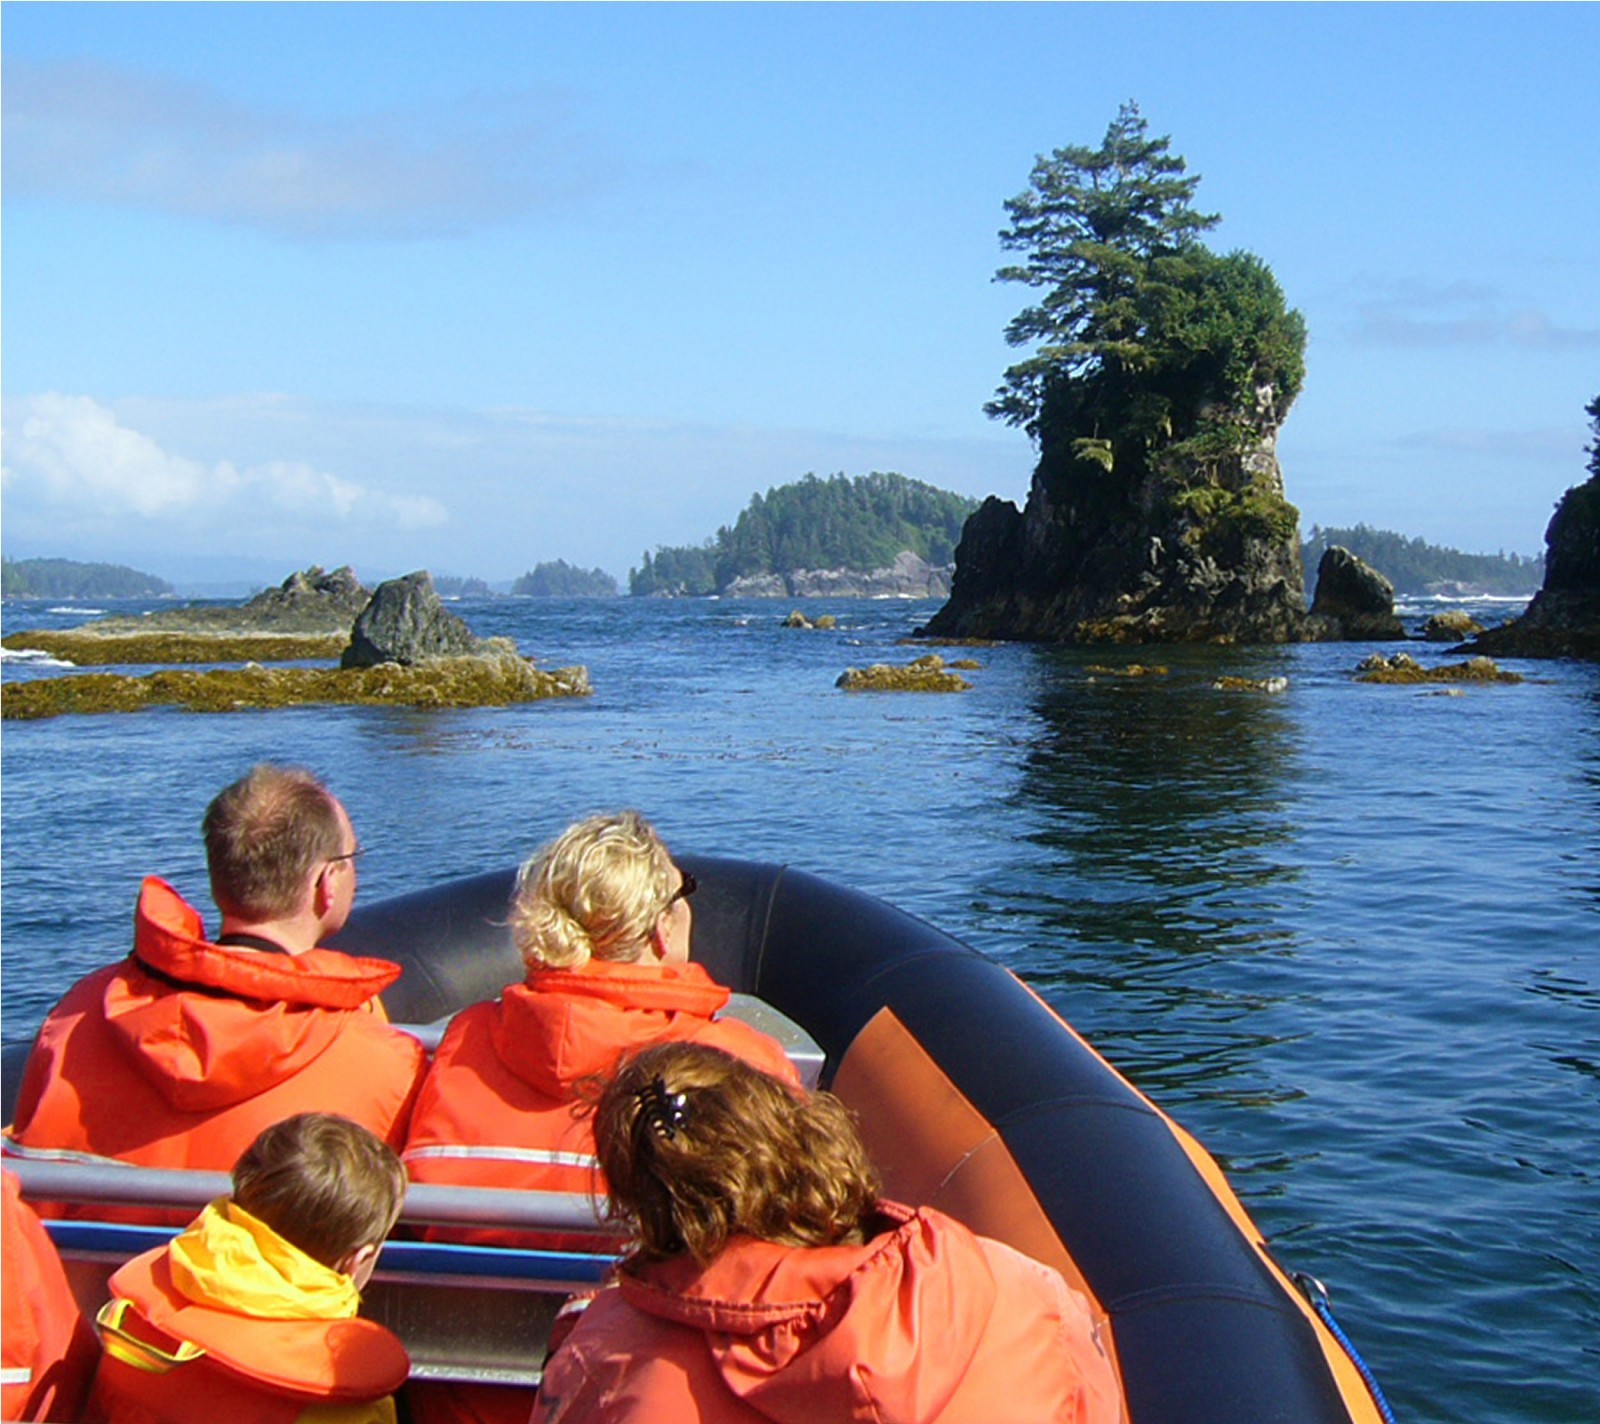 The extensive Wild Pacific Trail is rated in TripAdvisor as the #2 outdoor attraction in all British Columbia. PHOTO/Barbara Schramm